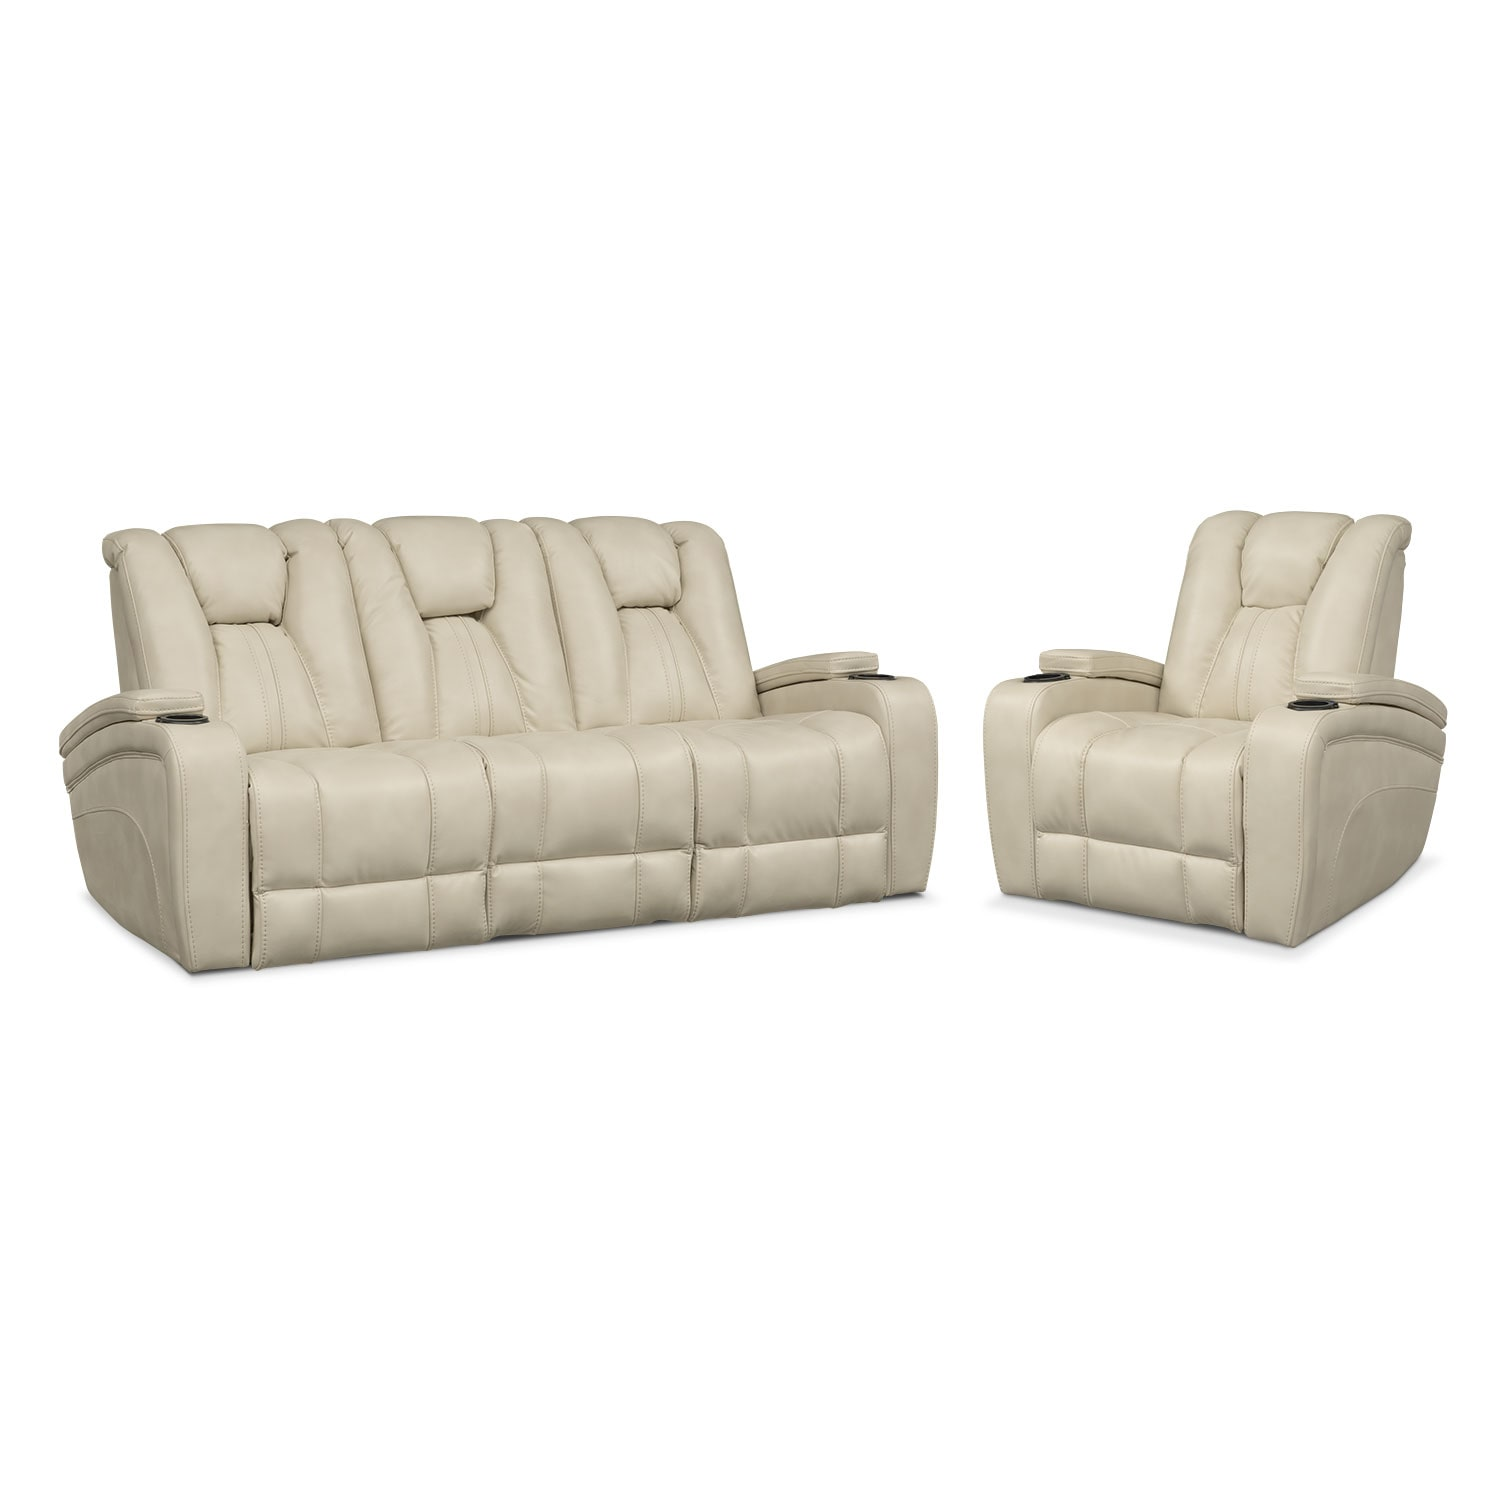 Ordinaire Living Room Furniture   Pulsar Dual Power Reclining Sofa And Power Recliner  Set   Cream